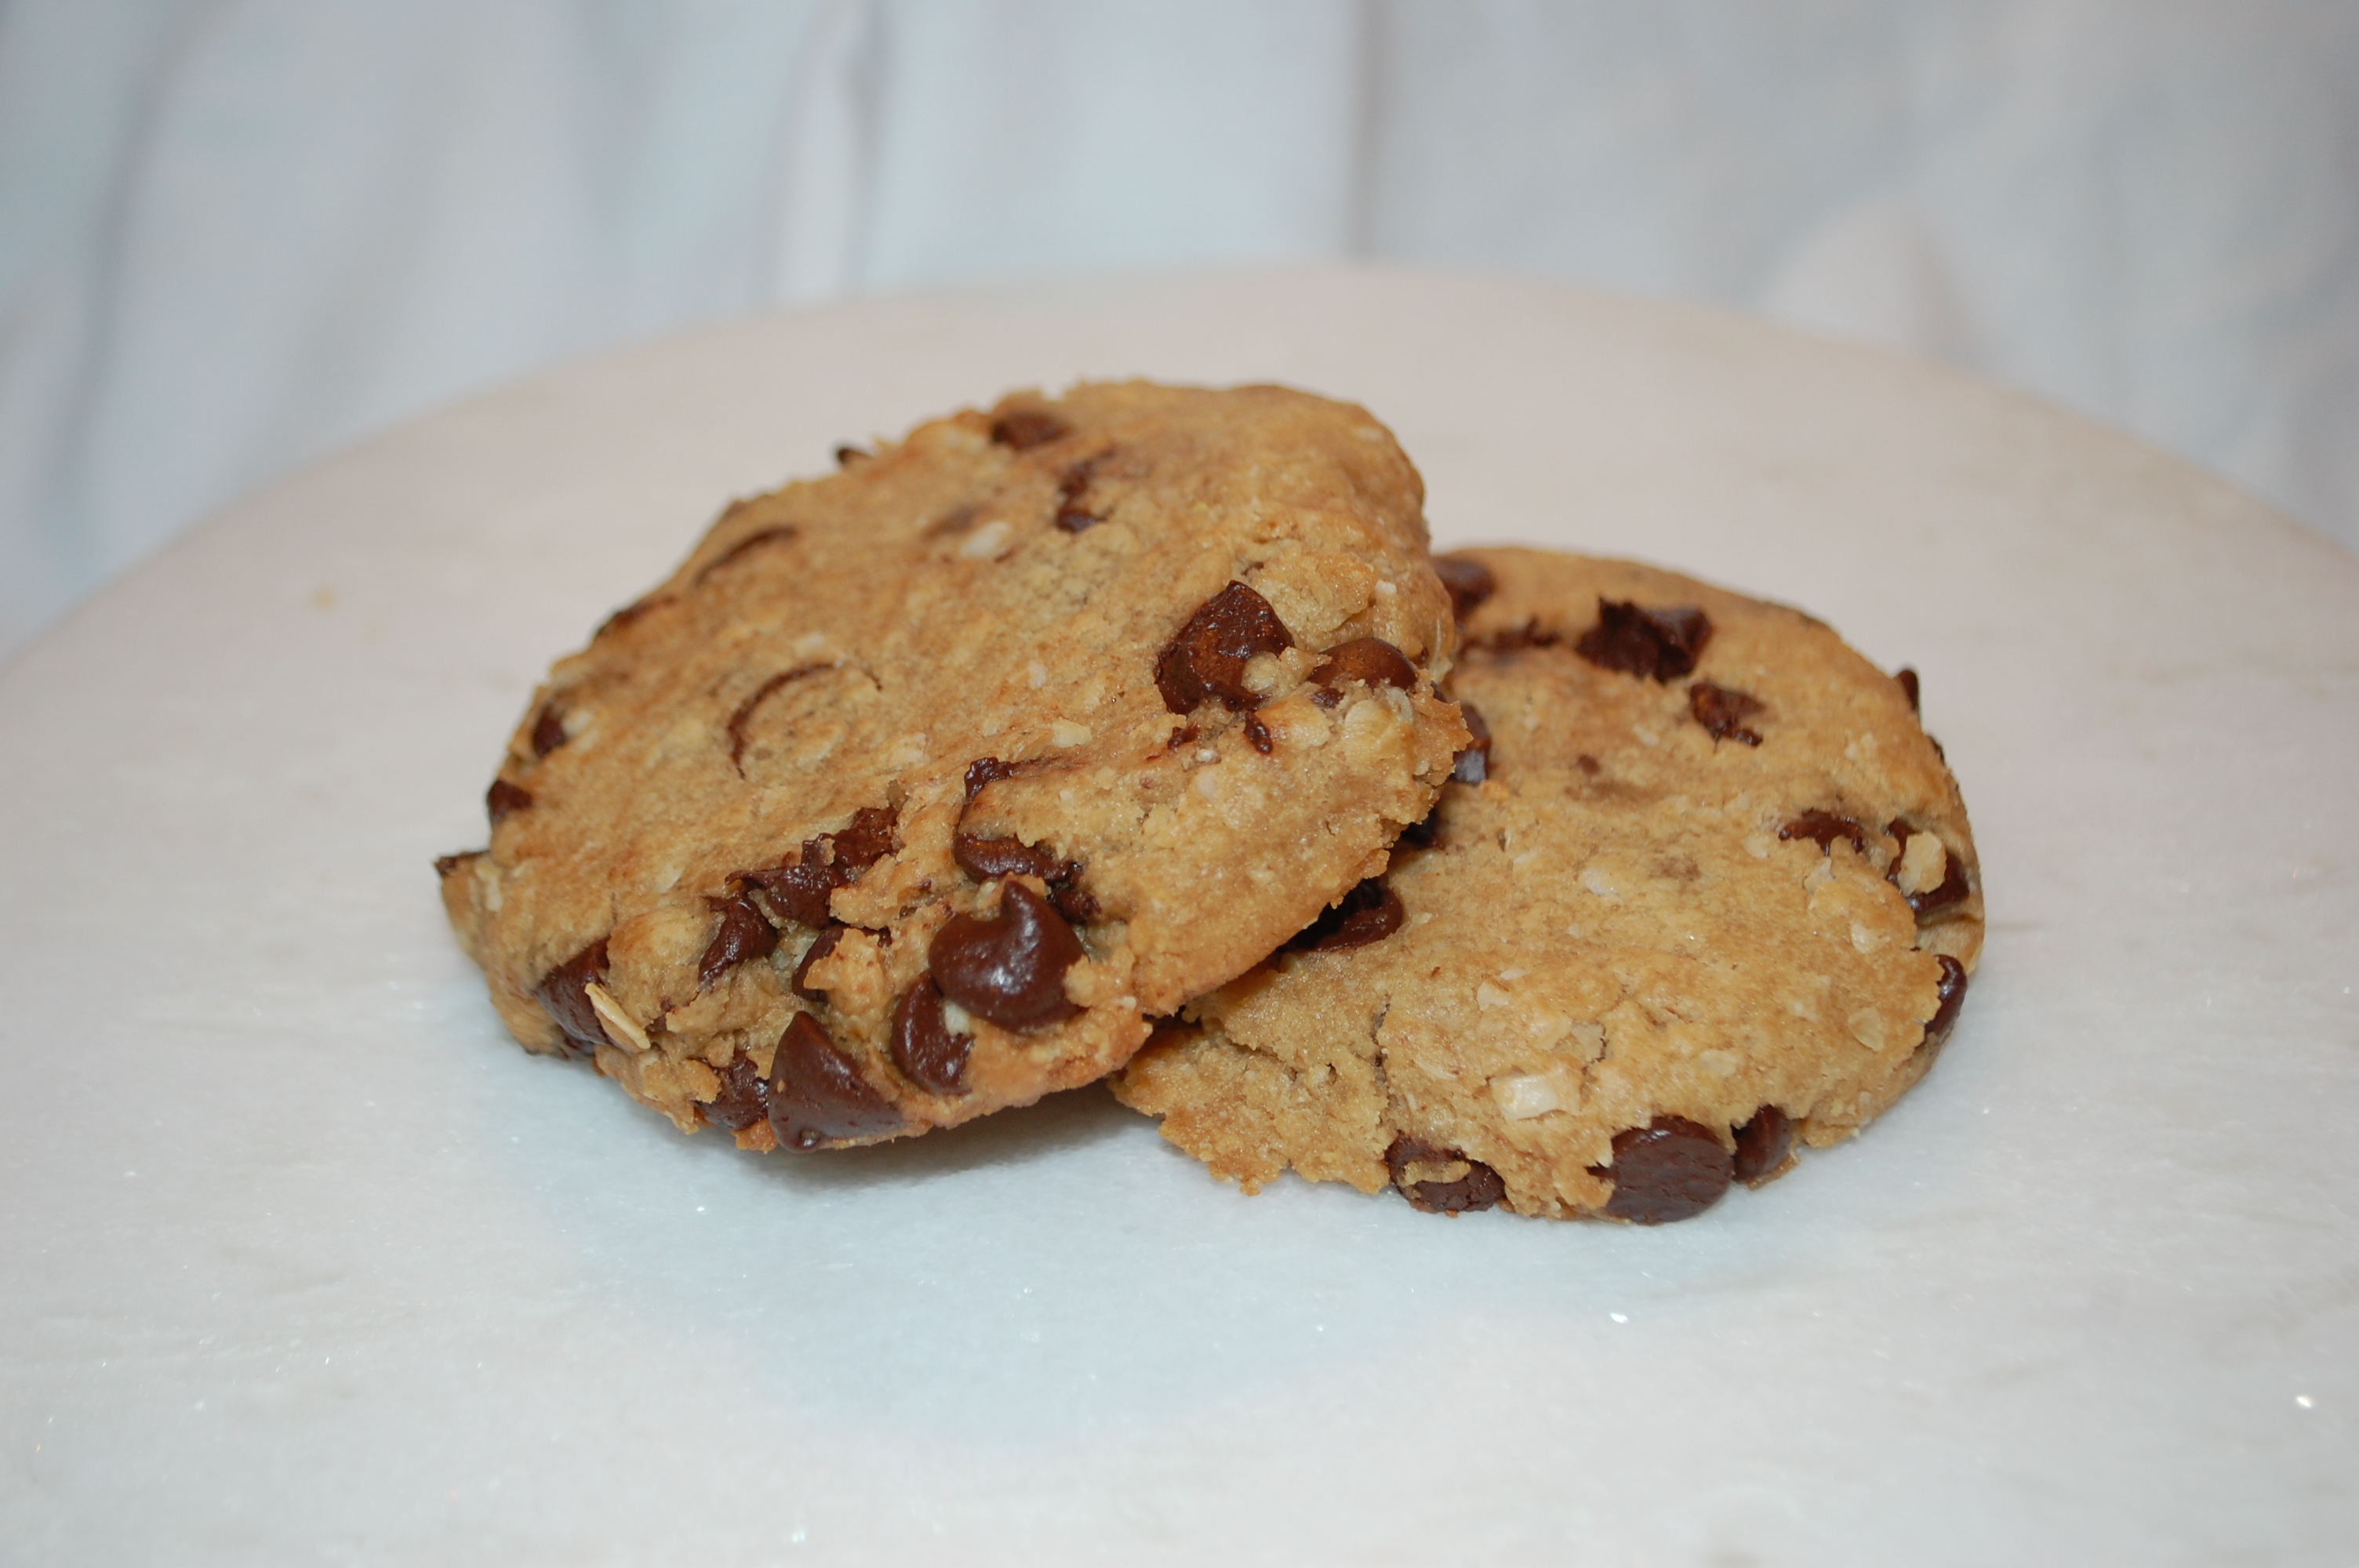 Delicious vegan option made with peanut butter, oatmeal and vegan chocolate chips.